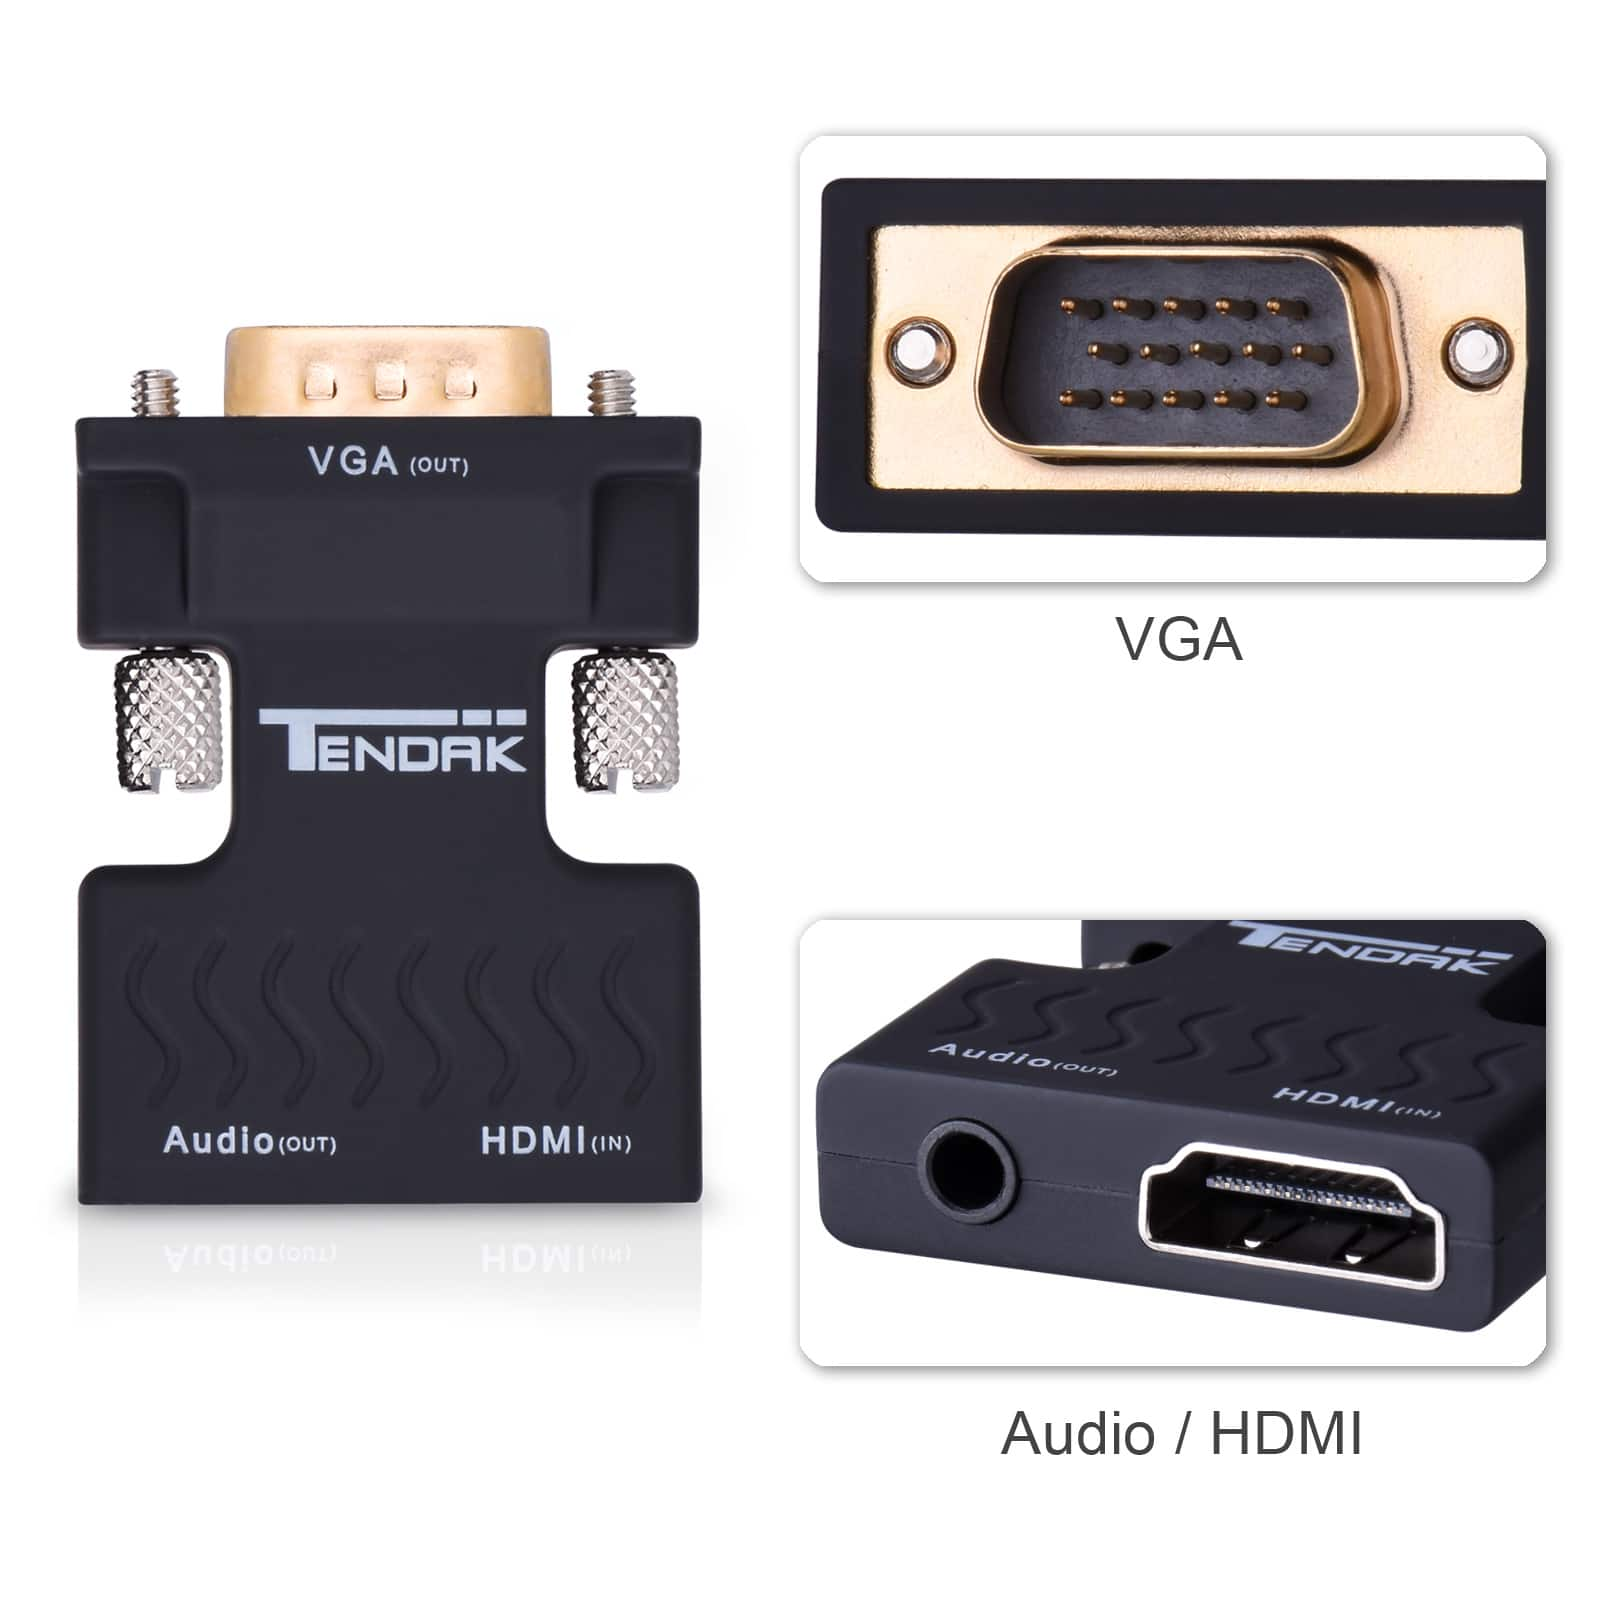 HDMI to VGA with Audio Adapter for Laptop PC PS3 Xbox STB Blu-ray TV Stick for $8.99